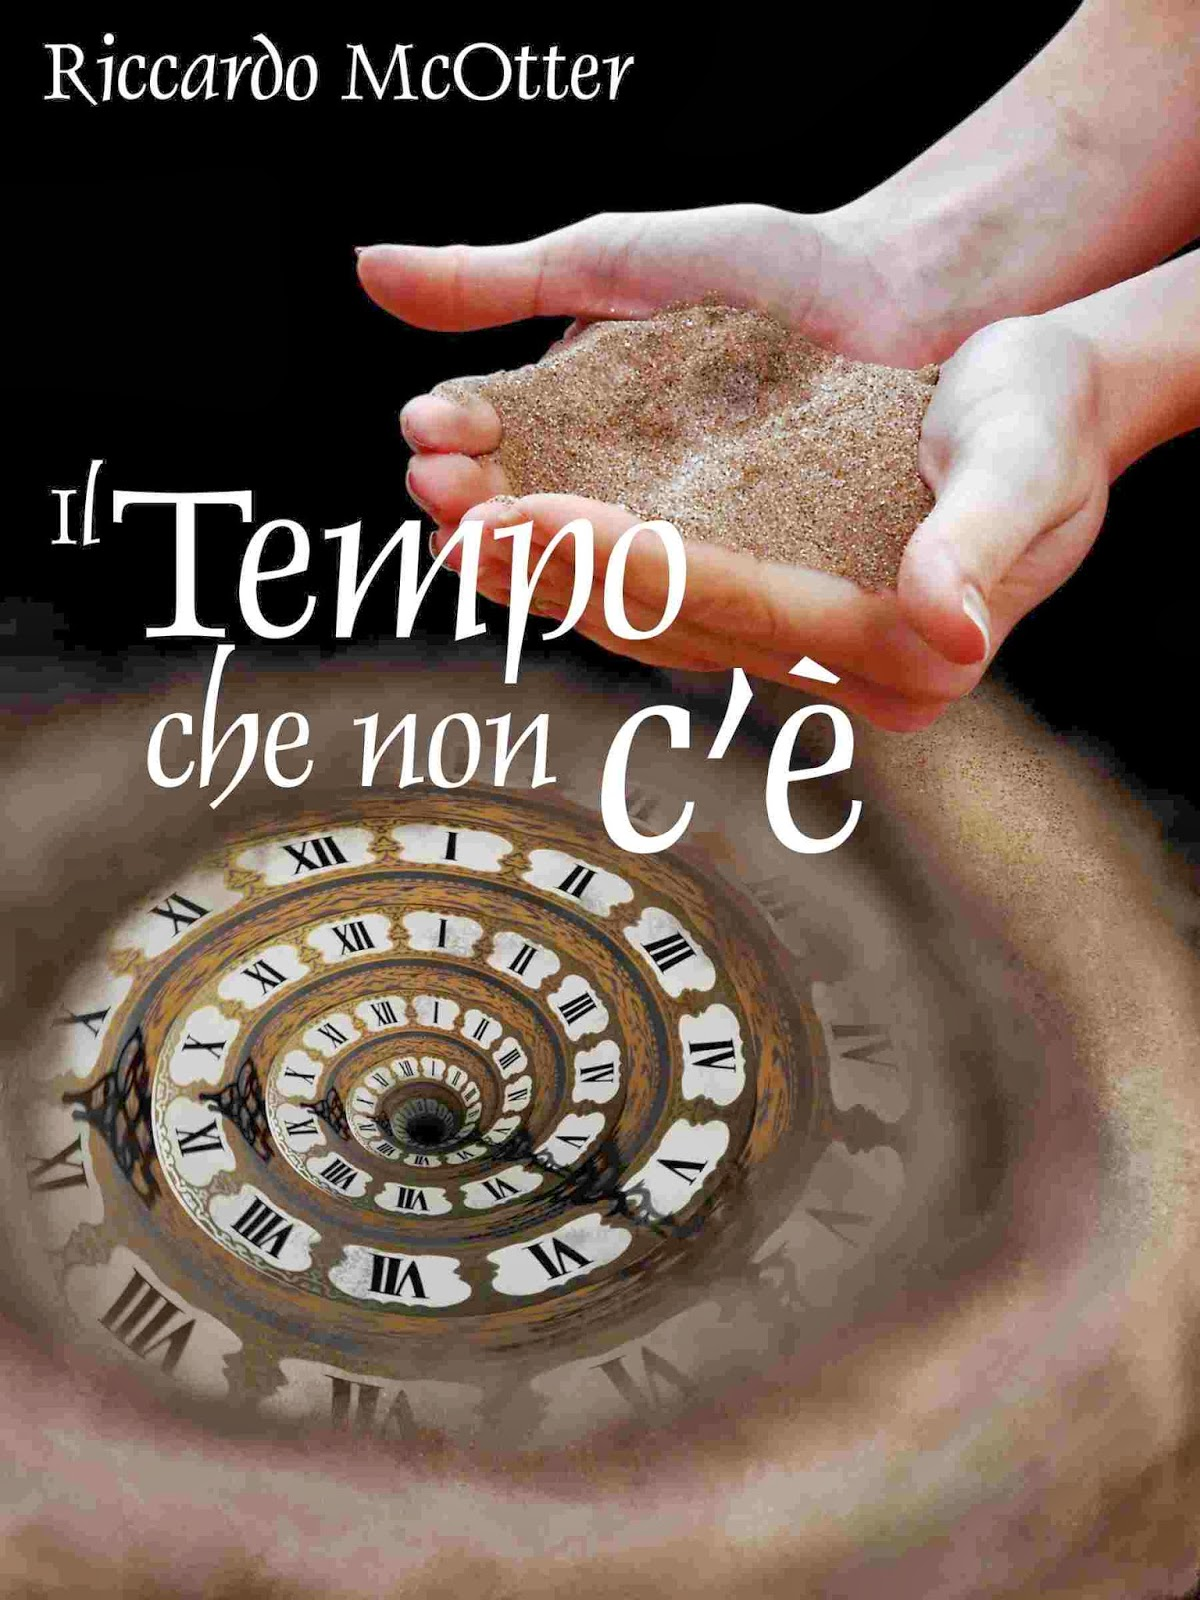 http://www.amazon.it/Il-Tempo-che-non-c%C3%A8-ebook/dp/B00IS8YXHW/ref=sr_1_1?ie=UTF8&qid=1395350799&sr=8-1&keywords=il+tempo+che+non+c%27%C3%A8